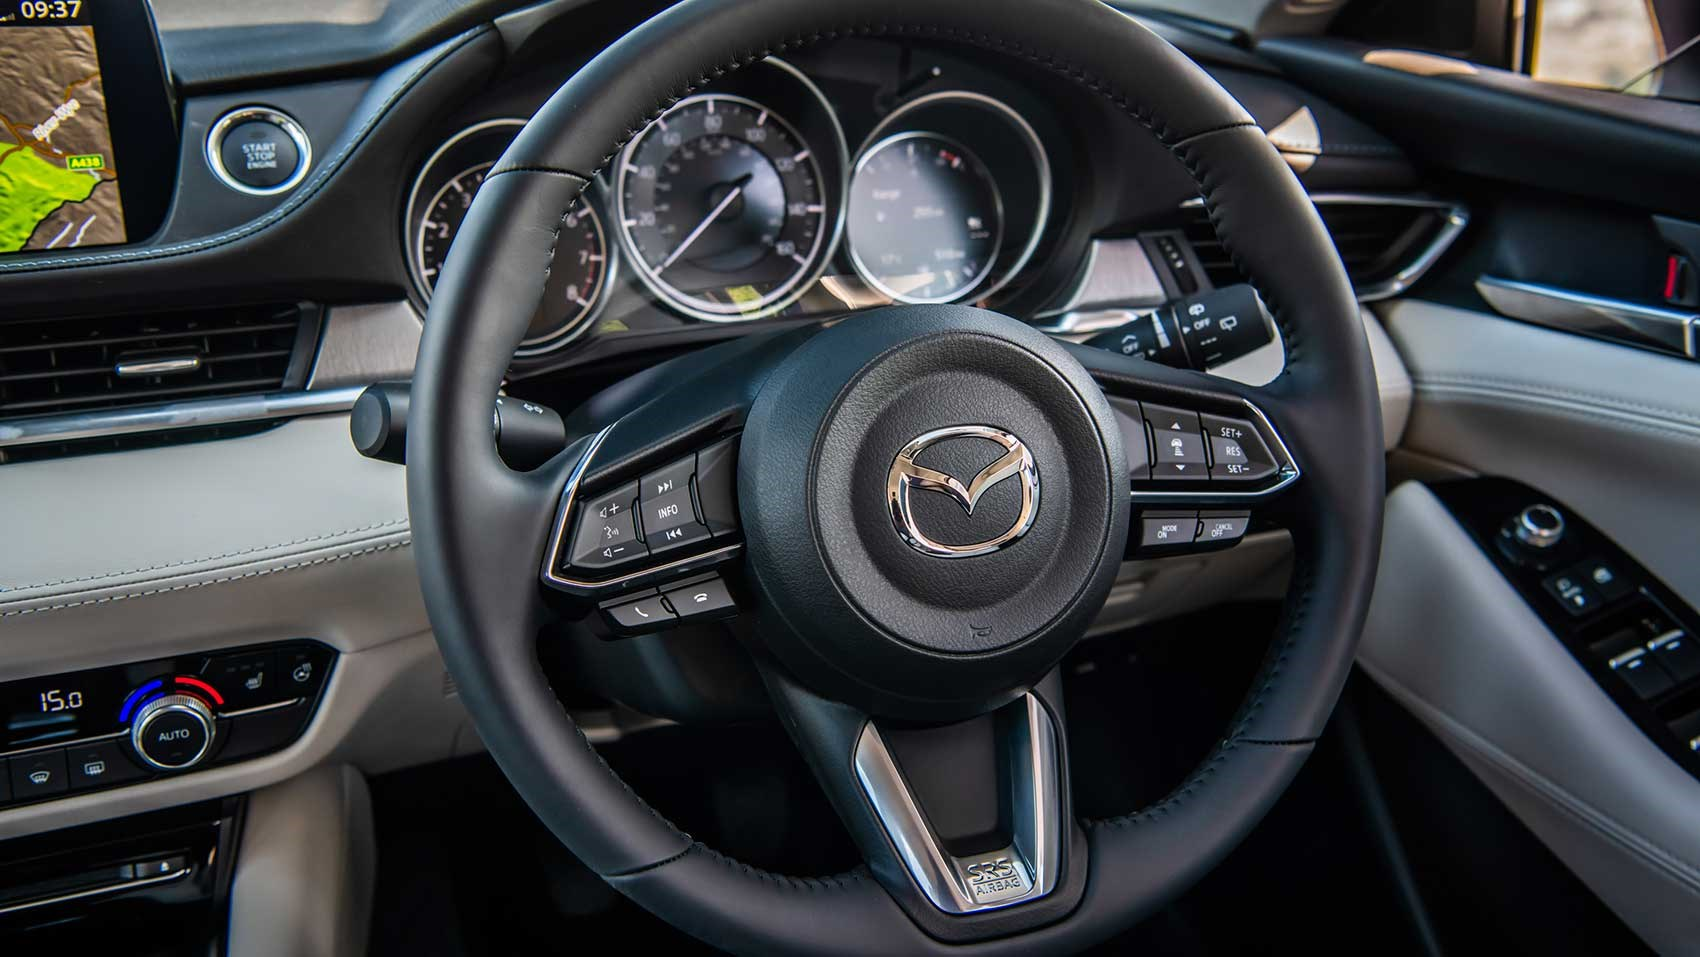 ... Steering wheel and cabin of new Mazda 6 ...